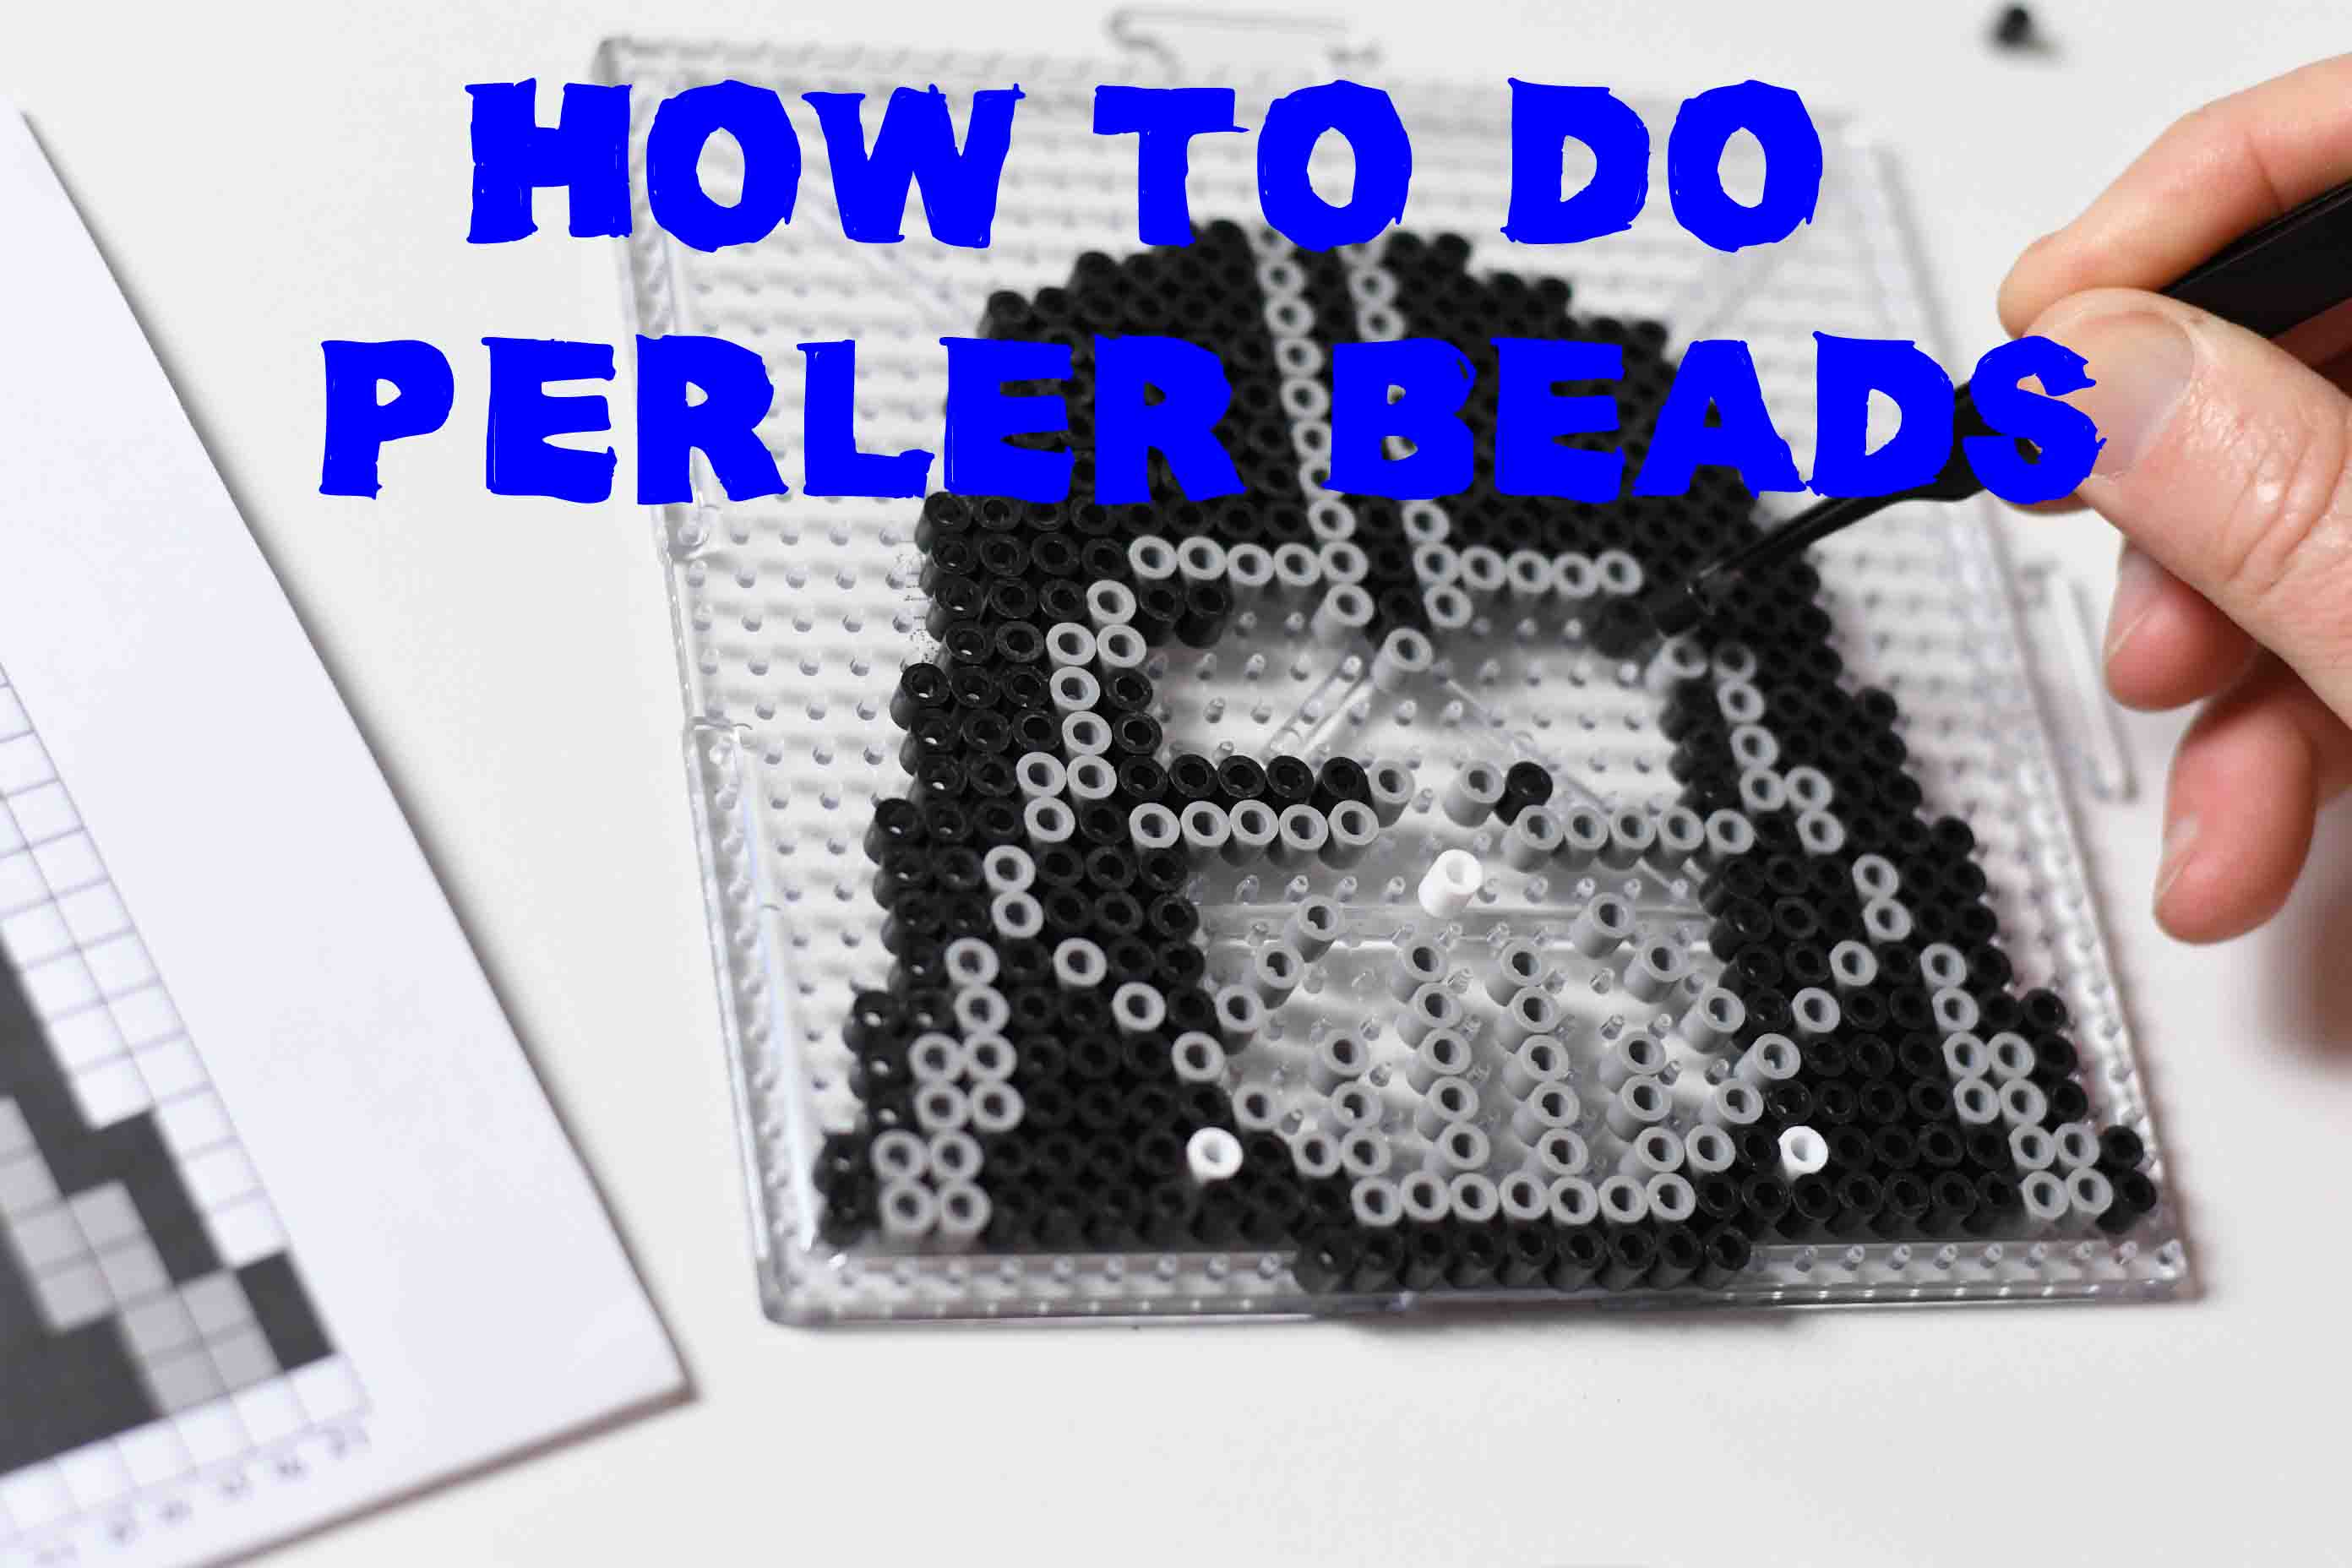 A simple 8 step guide on how to do Perler Beads!